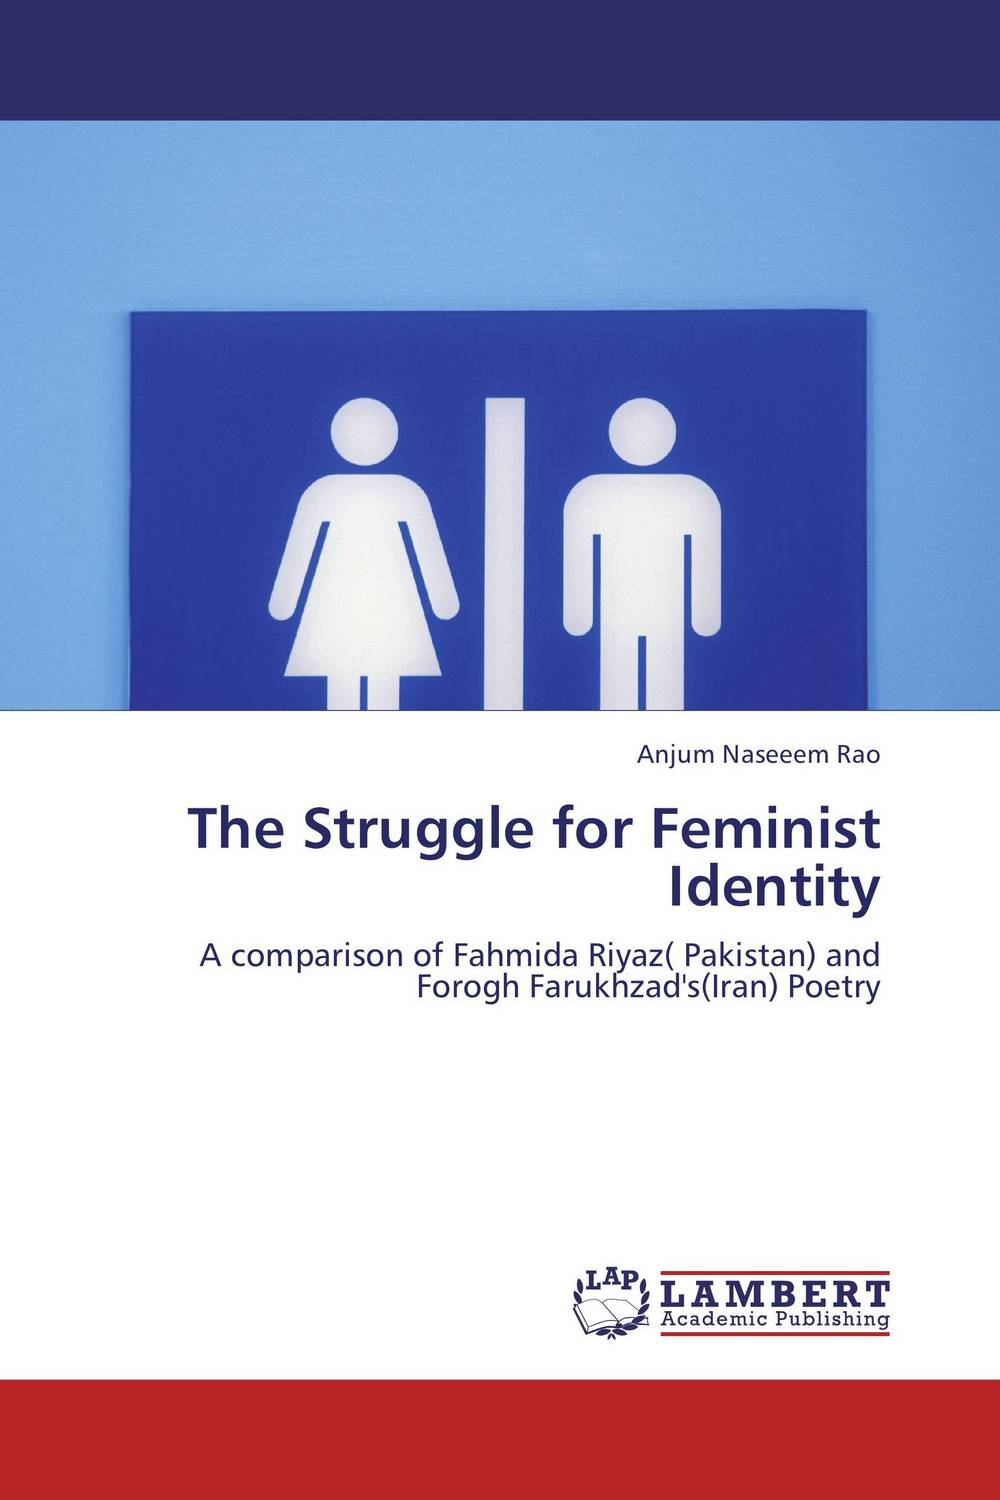 The Struggle for Feminist Identity white amur frenzy voices in the head fear and struggle with neither